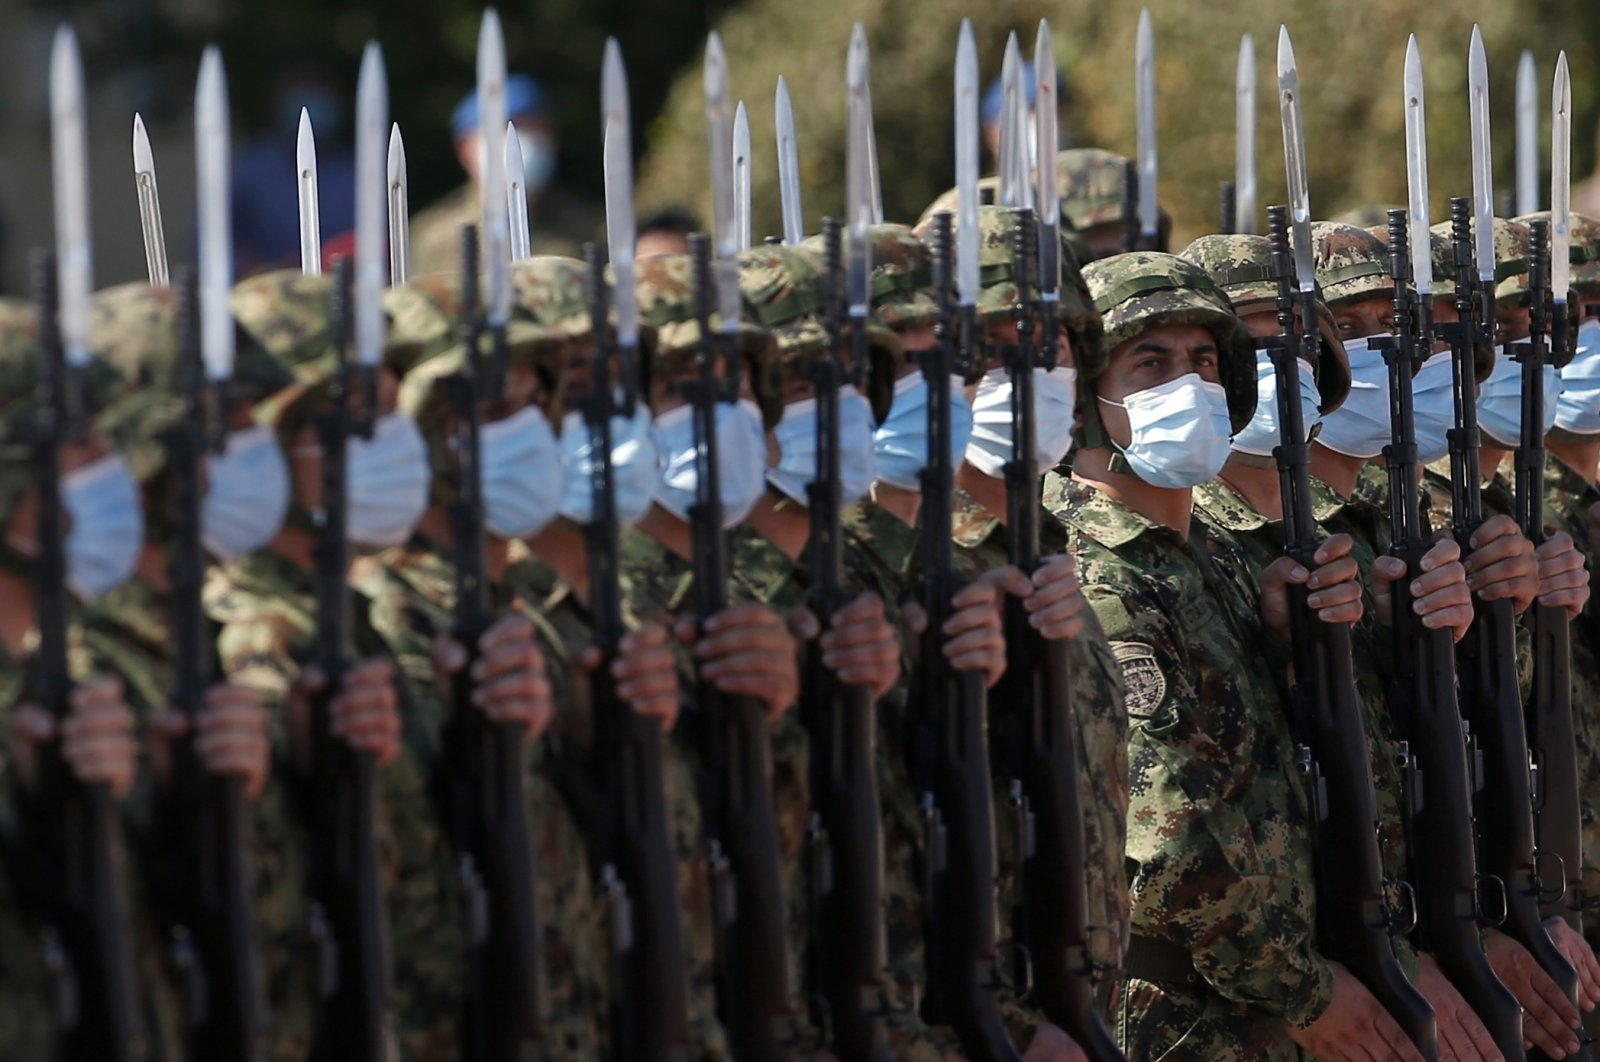 Serbian Honor guard wearing protective face masks during a welcome ceremony for Serbian President Aleksandar Vucic before the military exercises on Batajnica, military airport near Belgrade, Serbia on Aug. 21, 2020. (AP Photo)